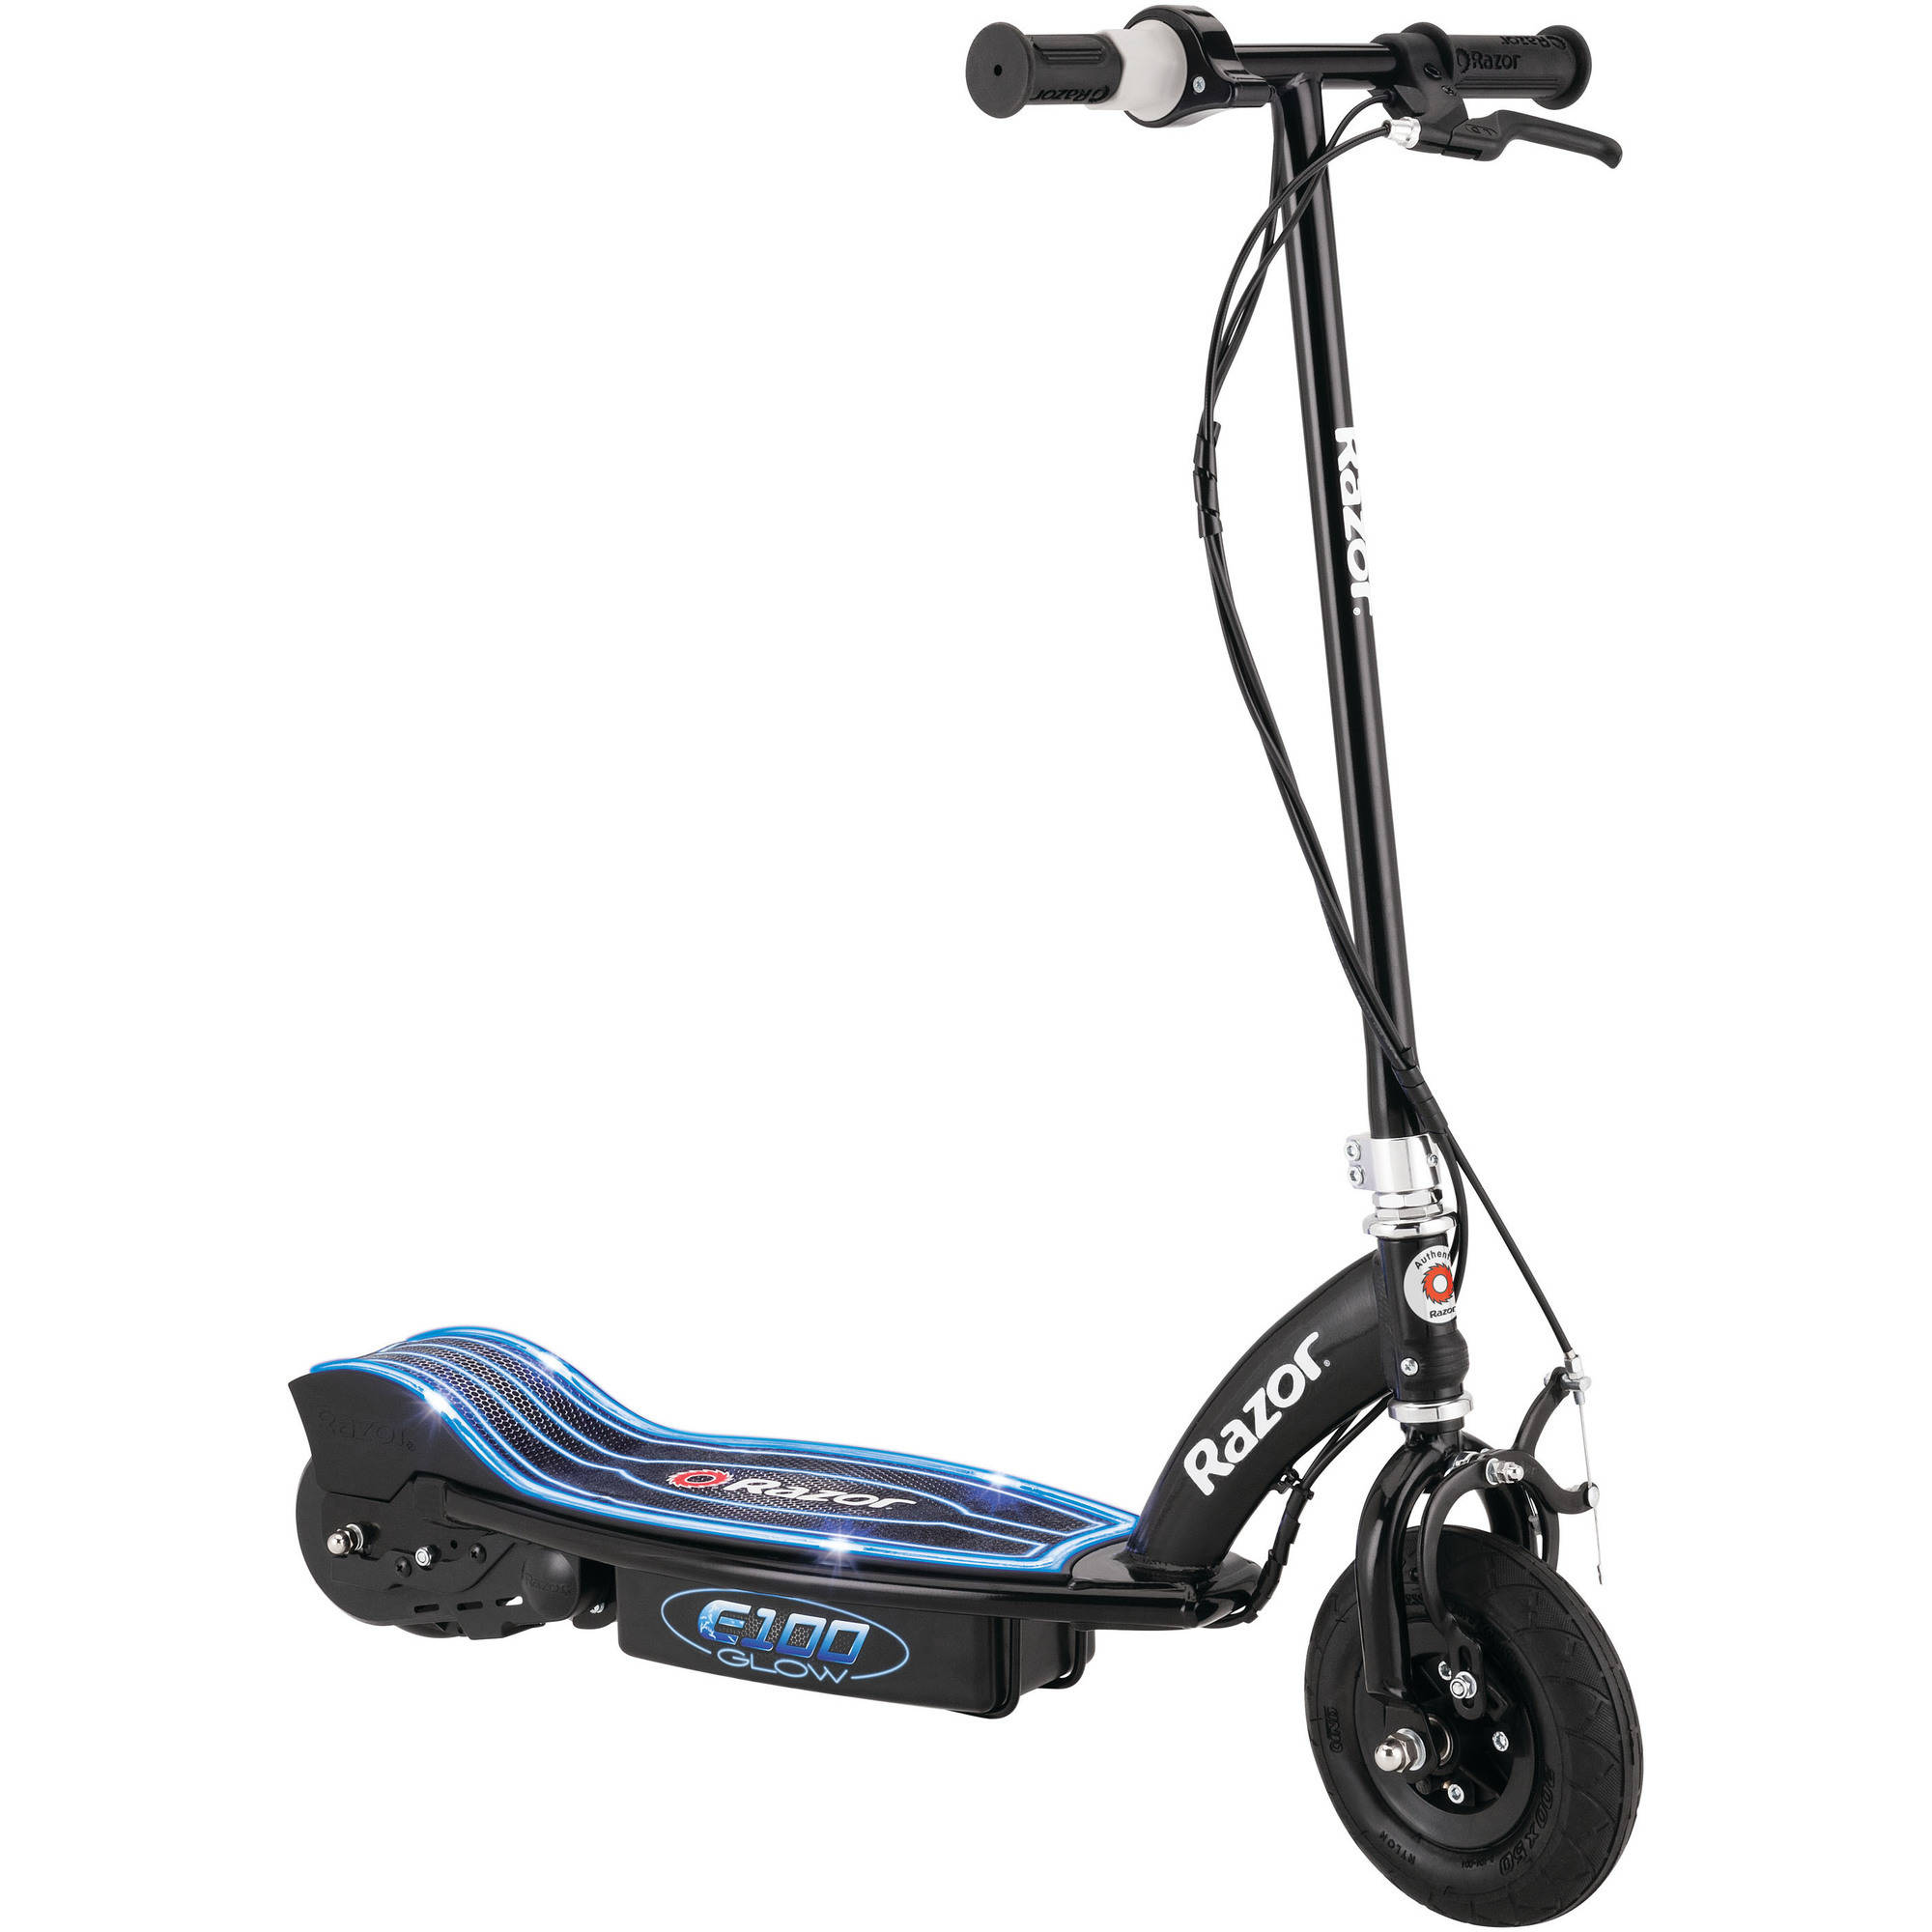 Satellite Electric Scooter Razor Wiring Diagram 12v Simple Wuxing Scooters Walmart Com